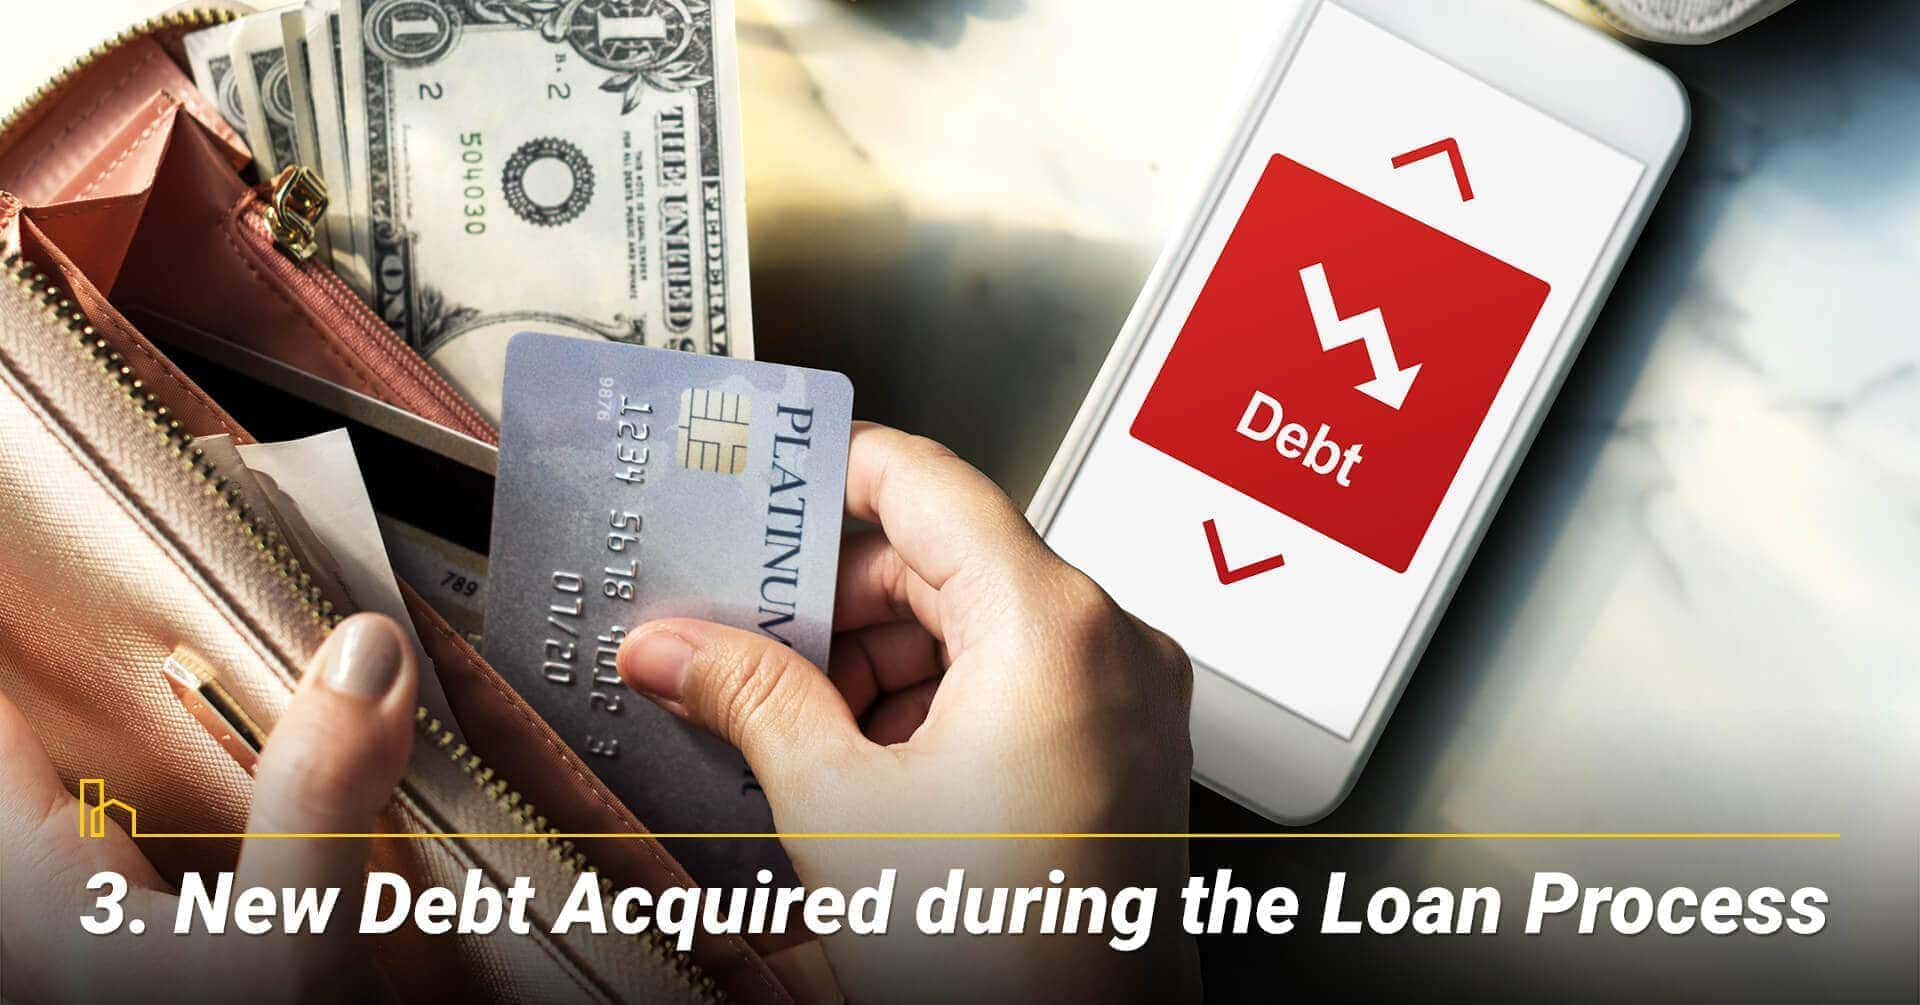 New Debt Acquired during the Loan Process